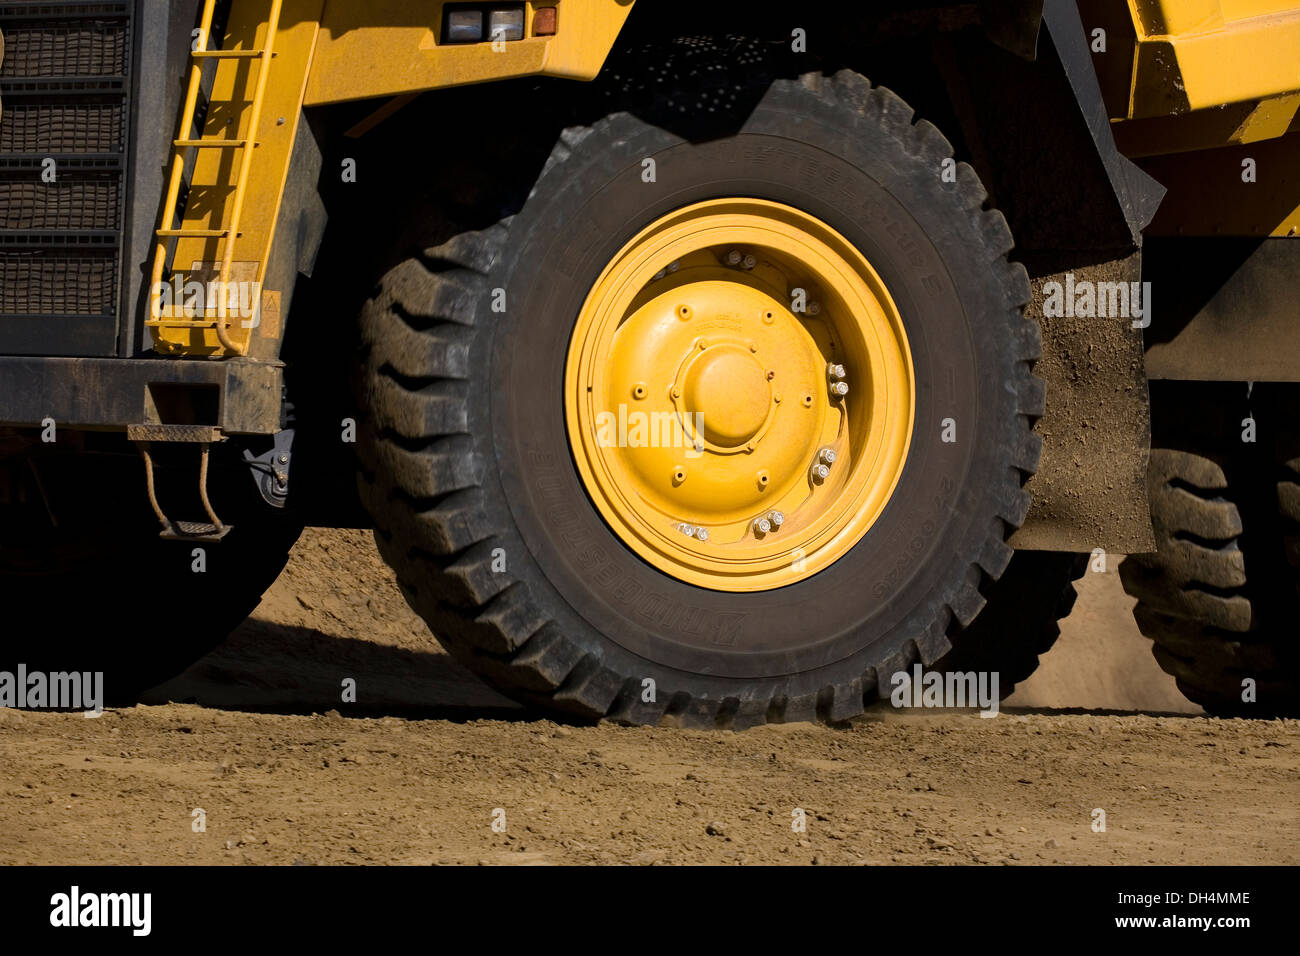 Close view of tire of one mine haul truck in pit - Stock Image